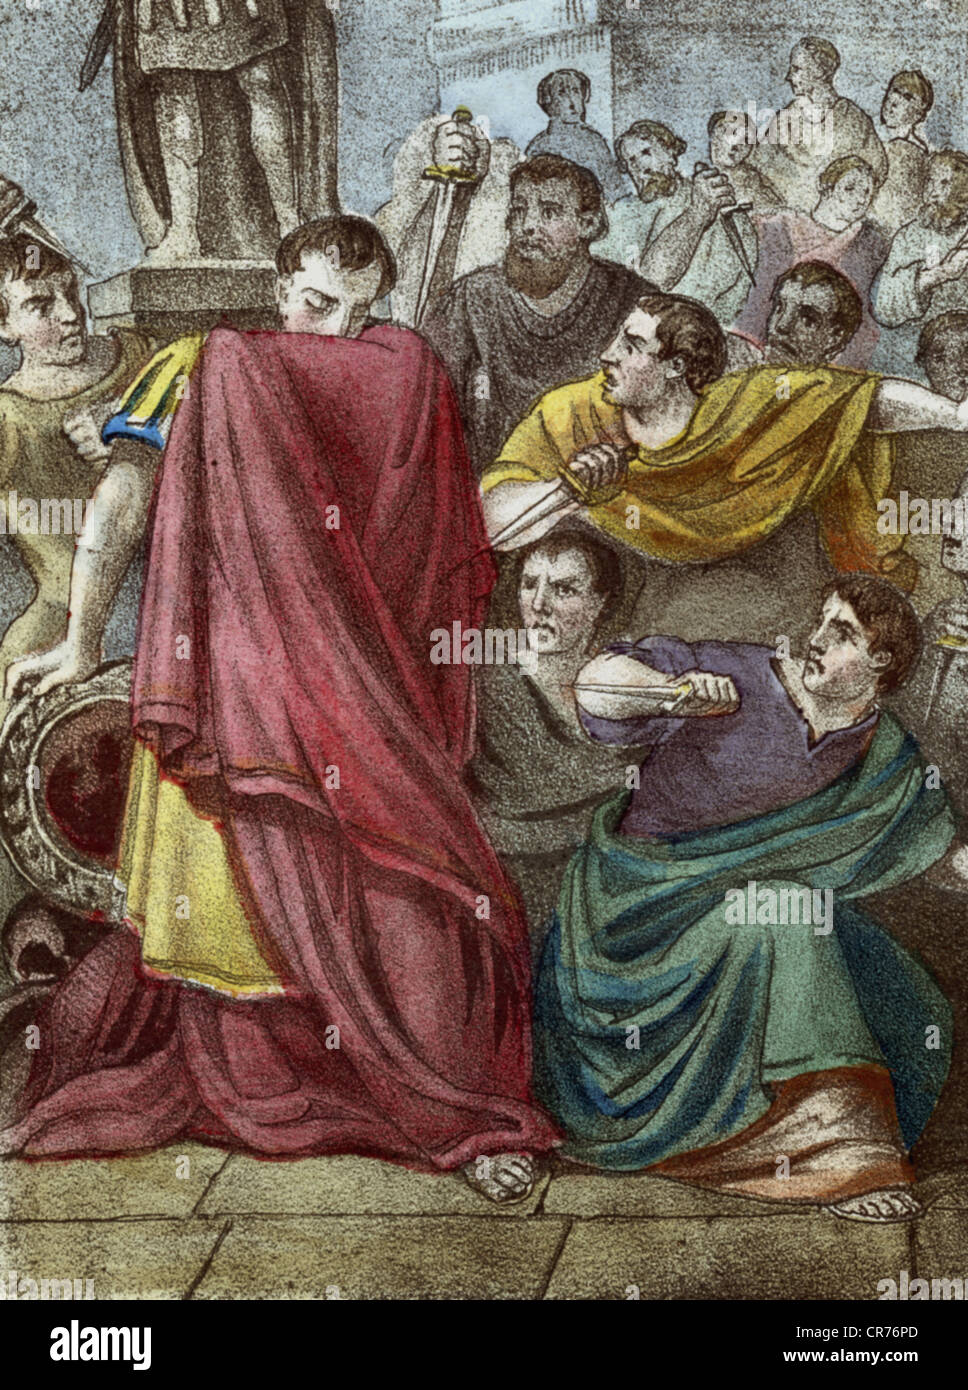 The death of Caius Julius Caesar, Roman emperor, strategist and writer, killed at the 15. 3. 44 before Christ, coloured - Stock Image